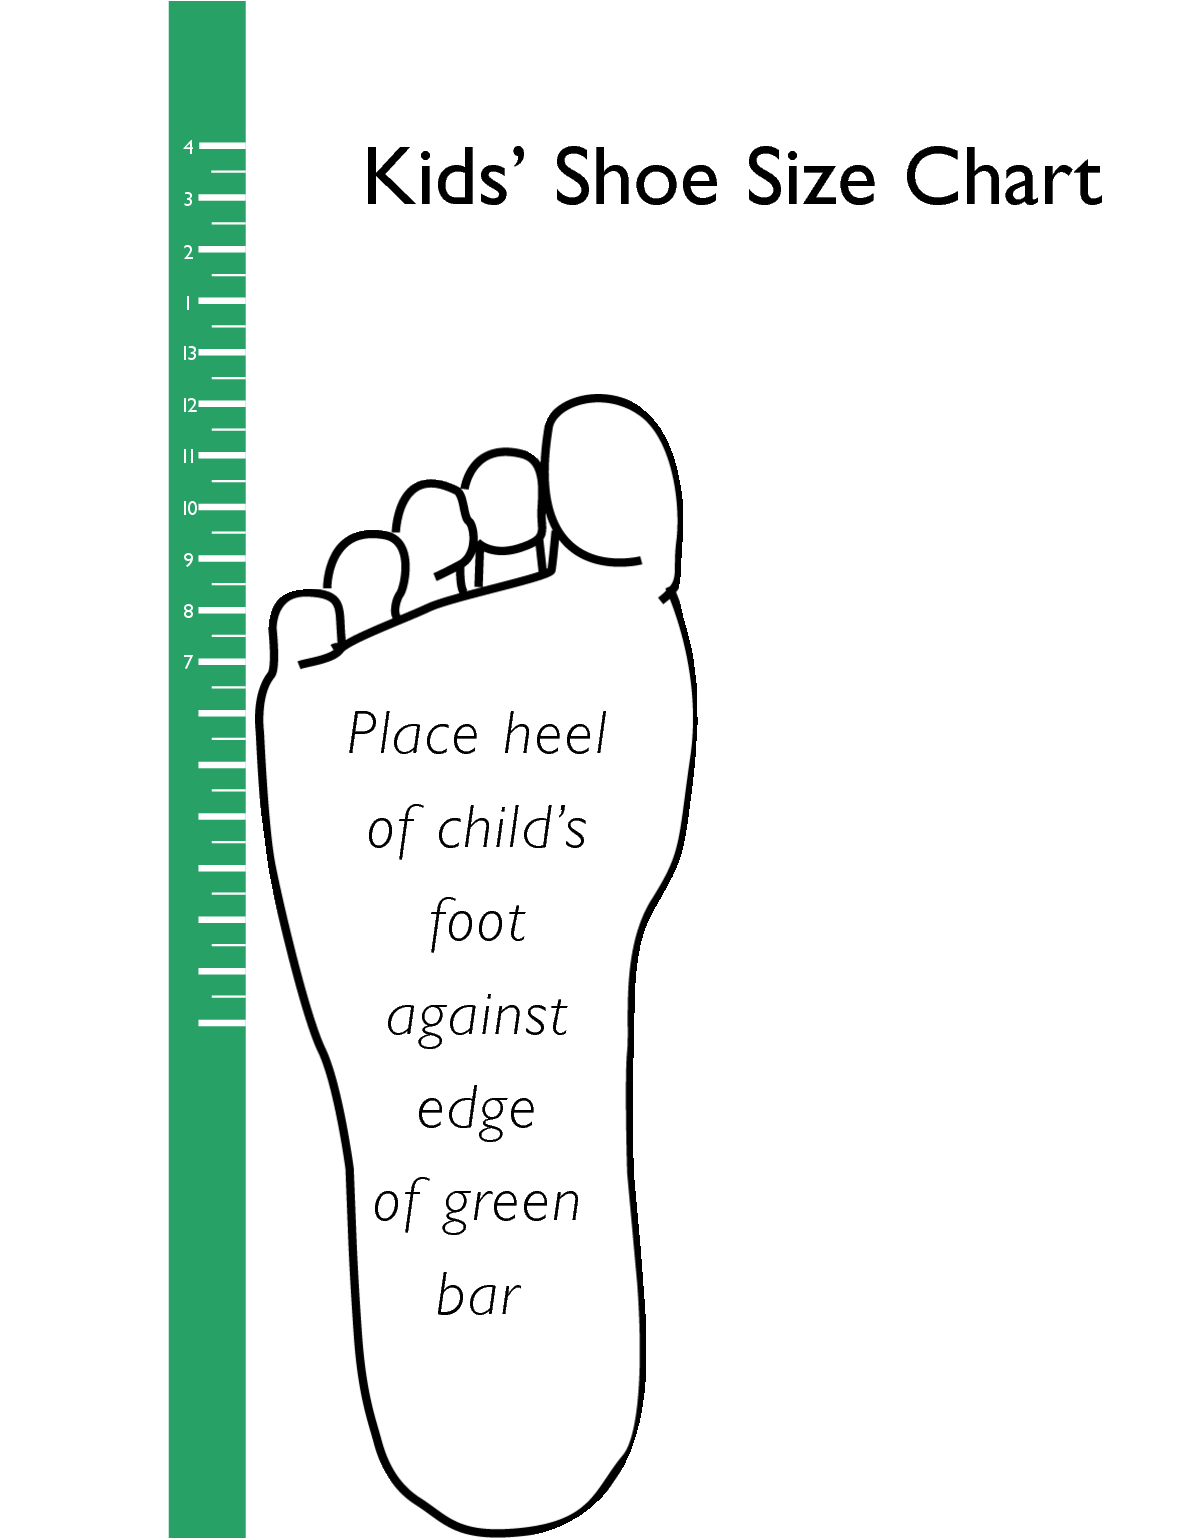 GET THE RIGHT SIZE JUST PRINT THIS PAGE AND FOLLOW THE DIRECTIONS. IMPORTANT! For an accurate fit, make sure SHOP AT bestsupsm5.cf YOUTH TODDLER 7 6 5 4 3 2 1 13 12 11 10 9 8 7 6 5 L size that fits the larger foot best.